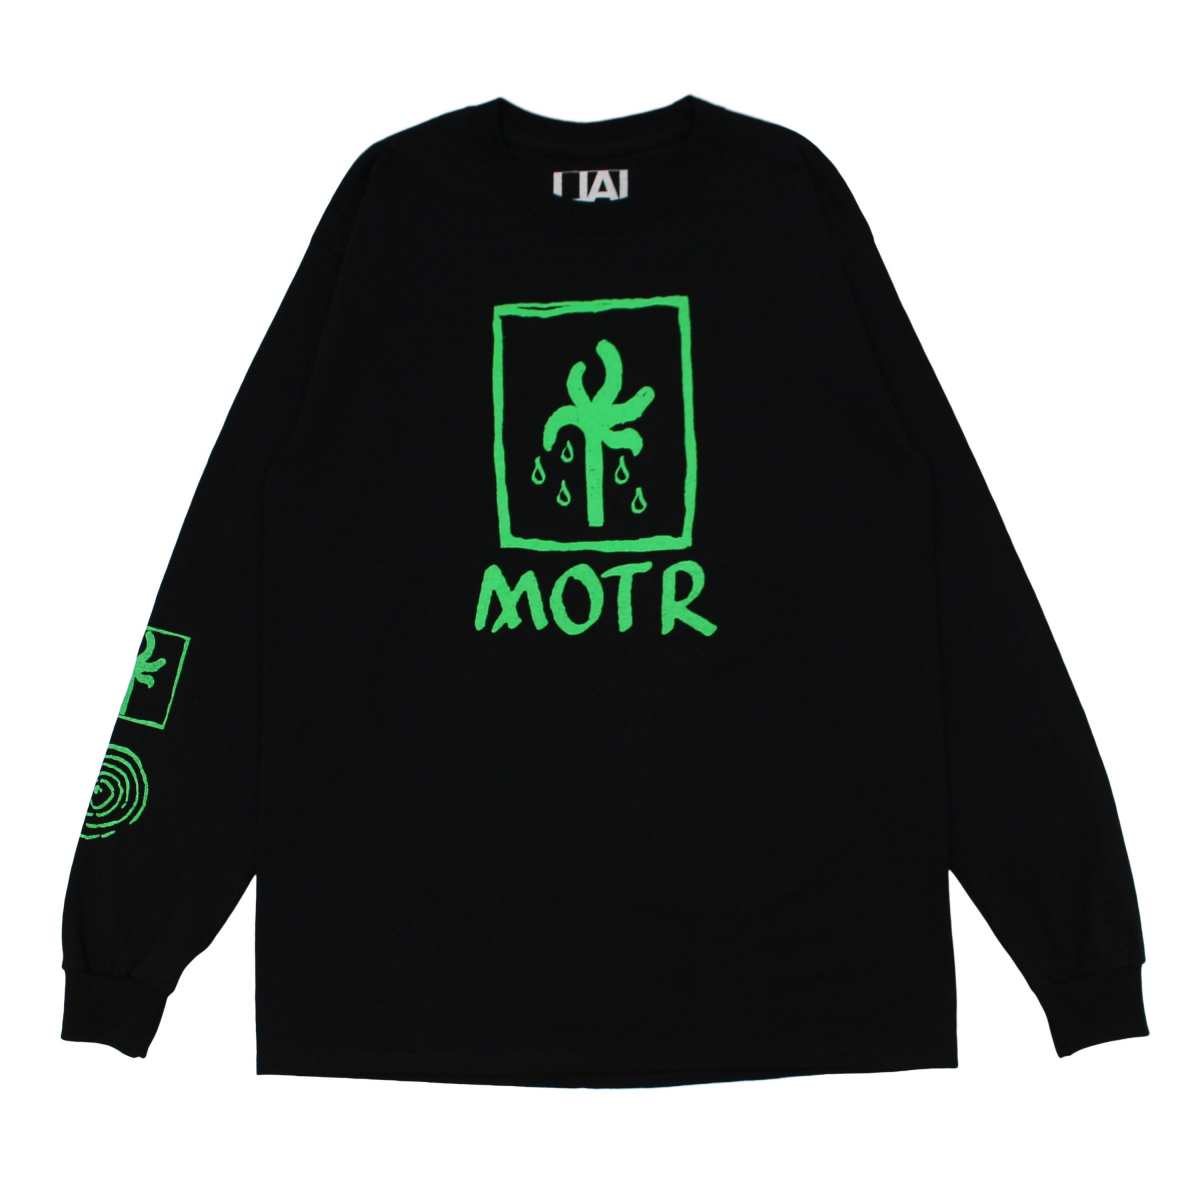 SLOW DANCE × LOCAL ALLIANCE MOTR L/S 【Black×Green】